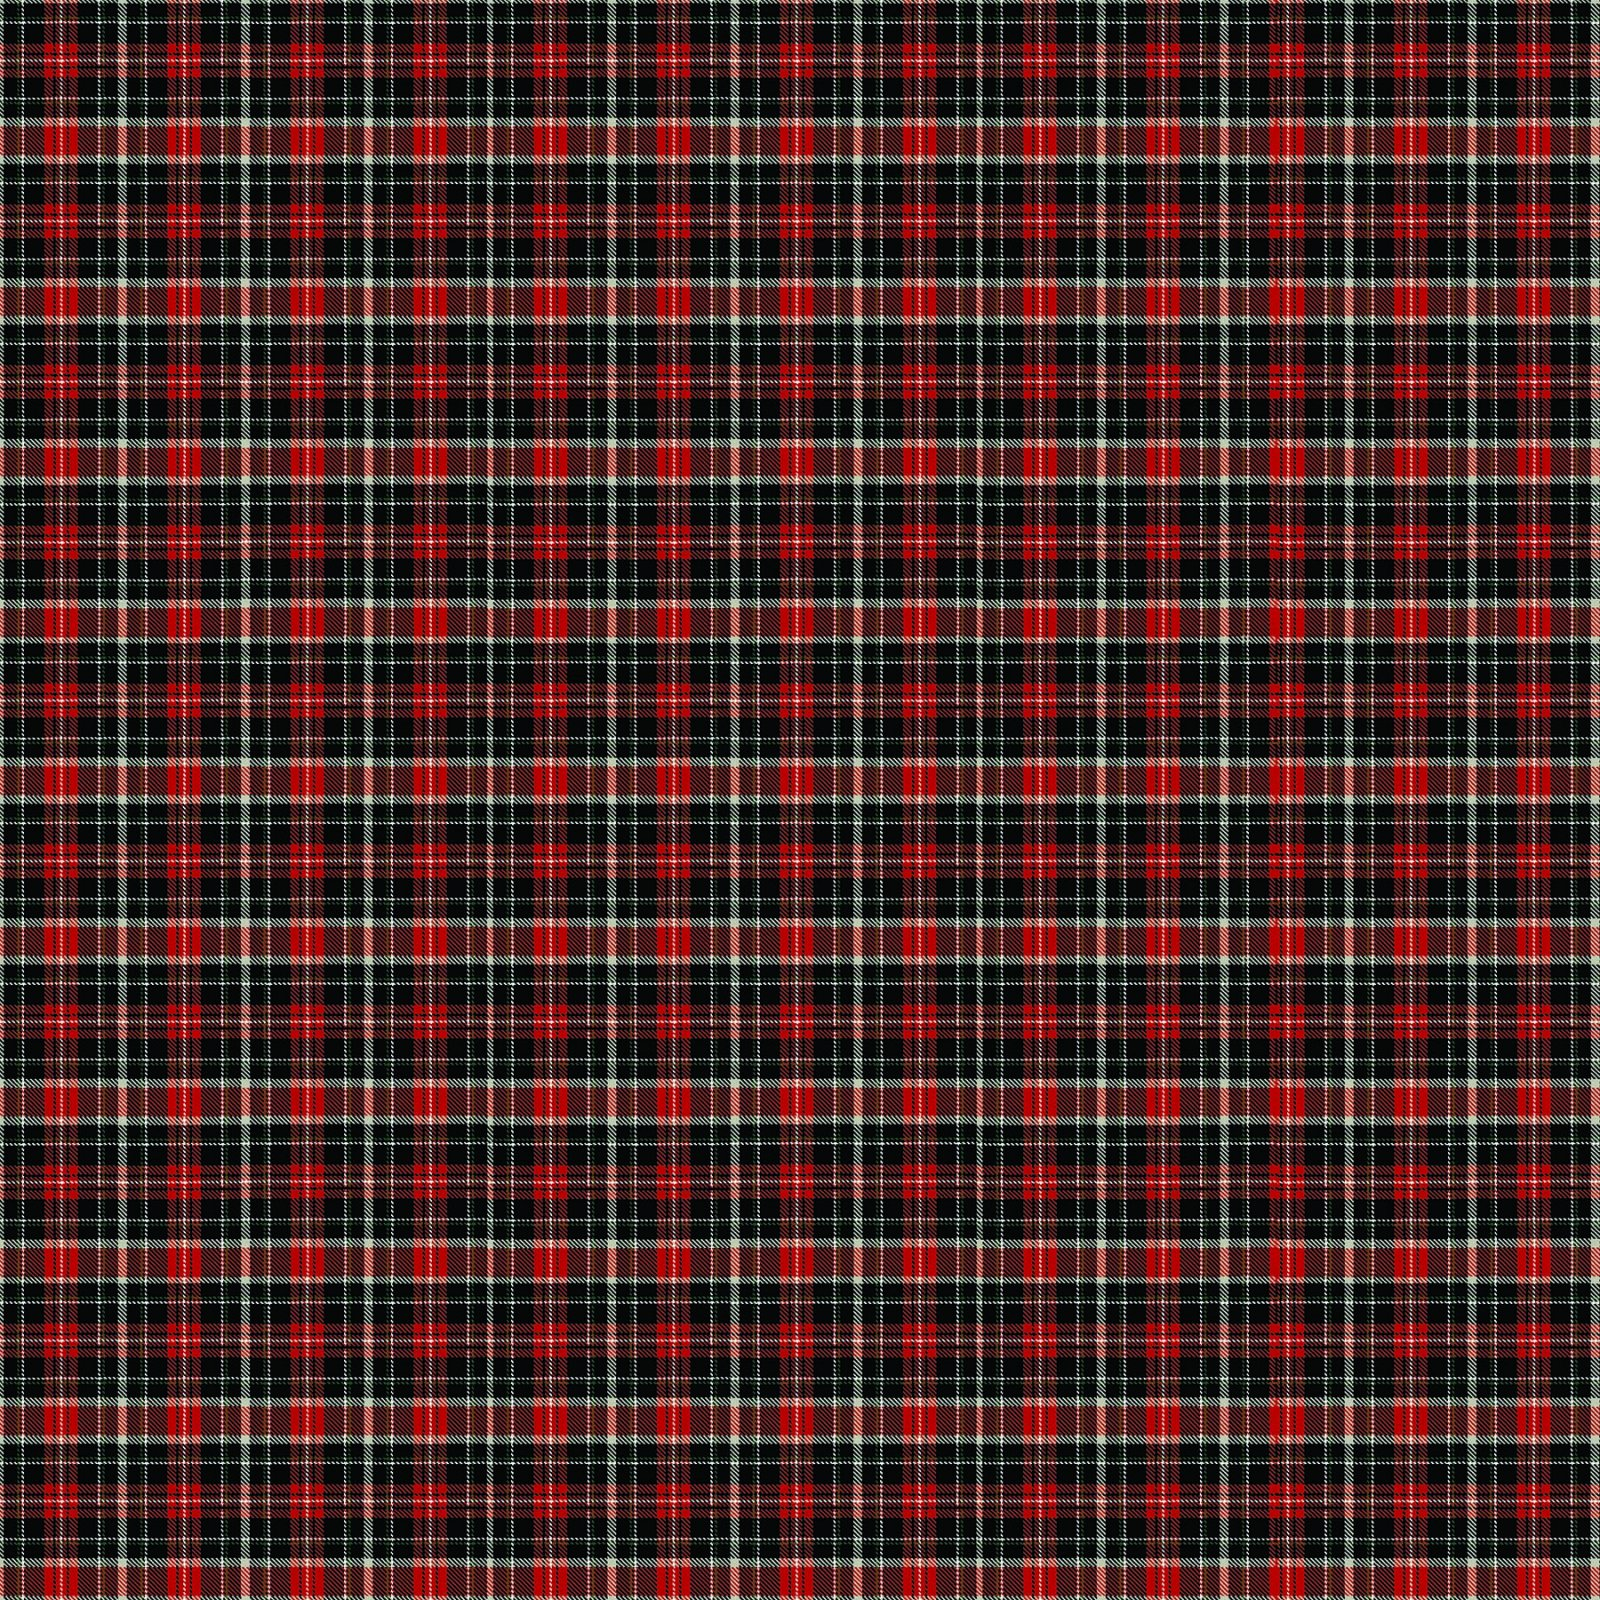 Cardinal Woods 22839-24 Red/Black Plaid